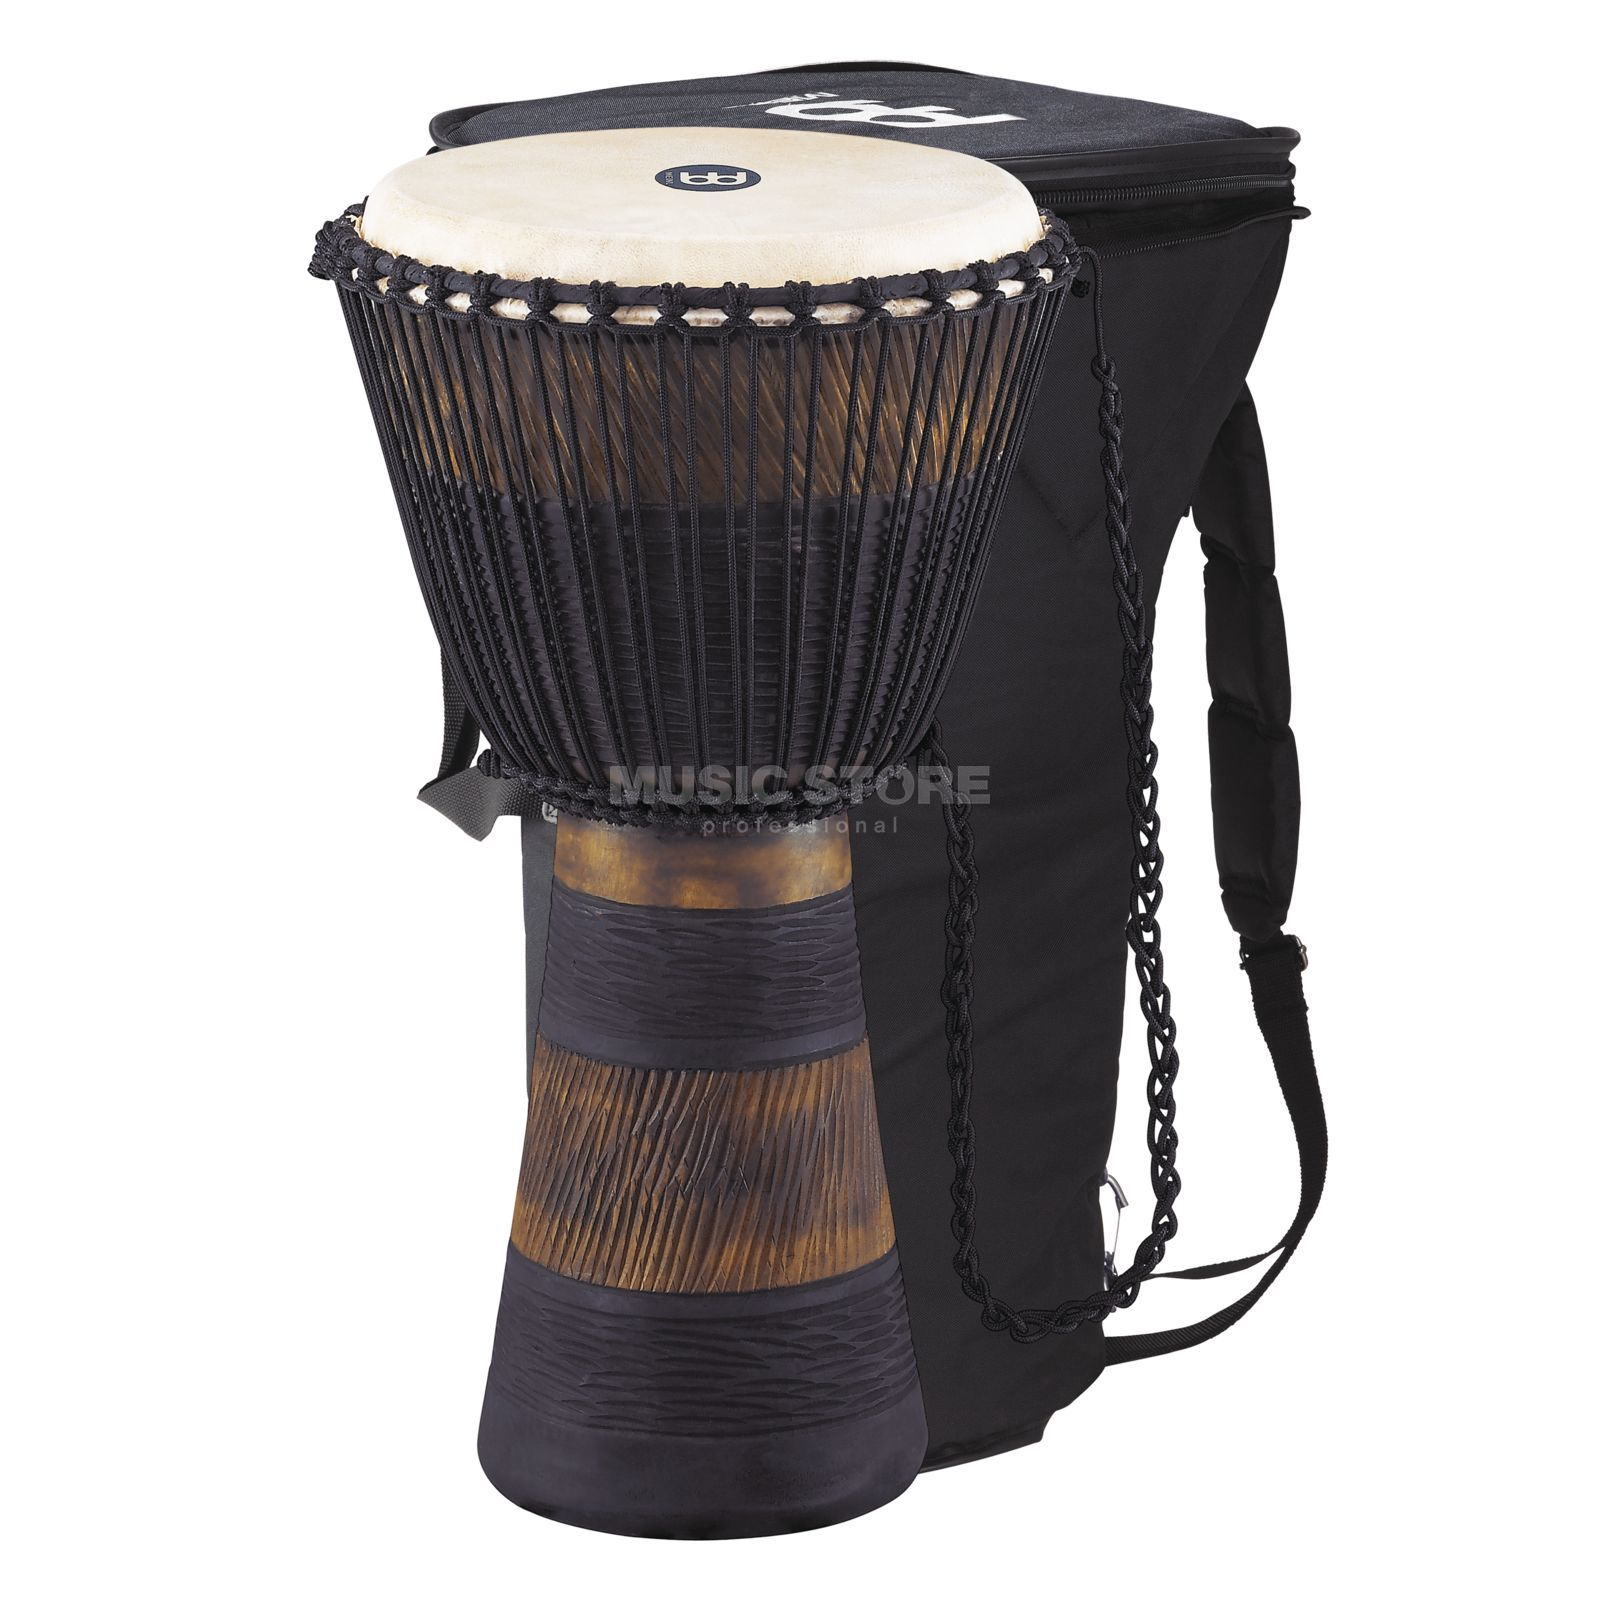 Meinl Djembe ADJ3-M + Bag Earth Rhythm Serie Productafbeelding